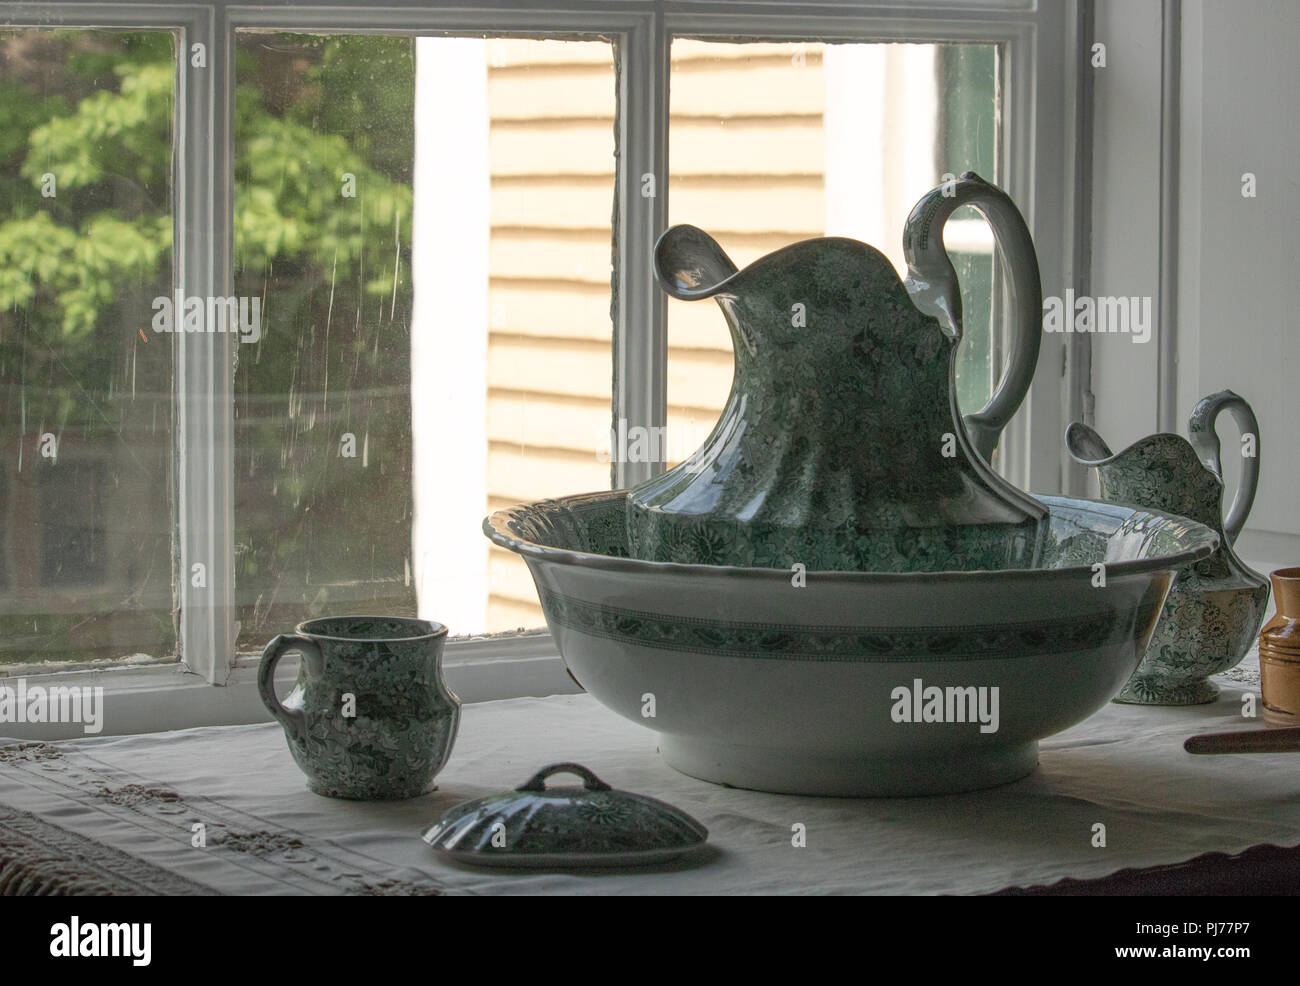 Antique pitcher and bowl from 1800s sitting on washstand, romantic vintage Victorian elegance Stock Photo